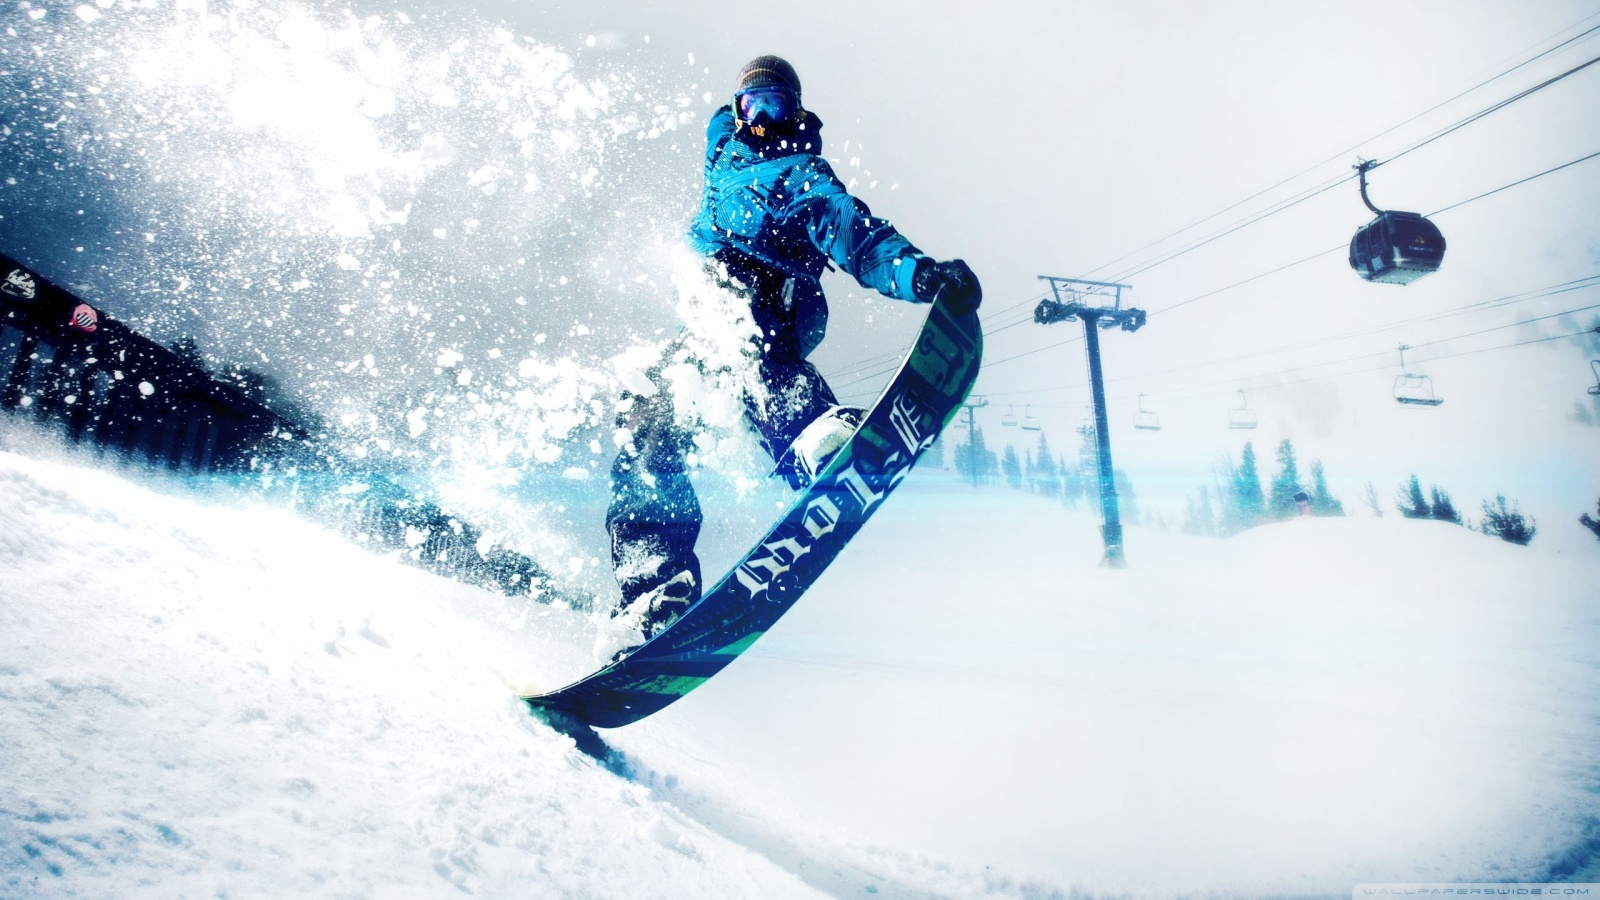 hd_snowboarding-wallpaper-1600x900.jpg